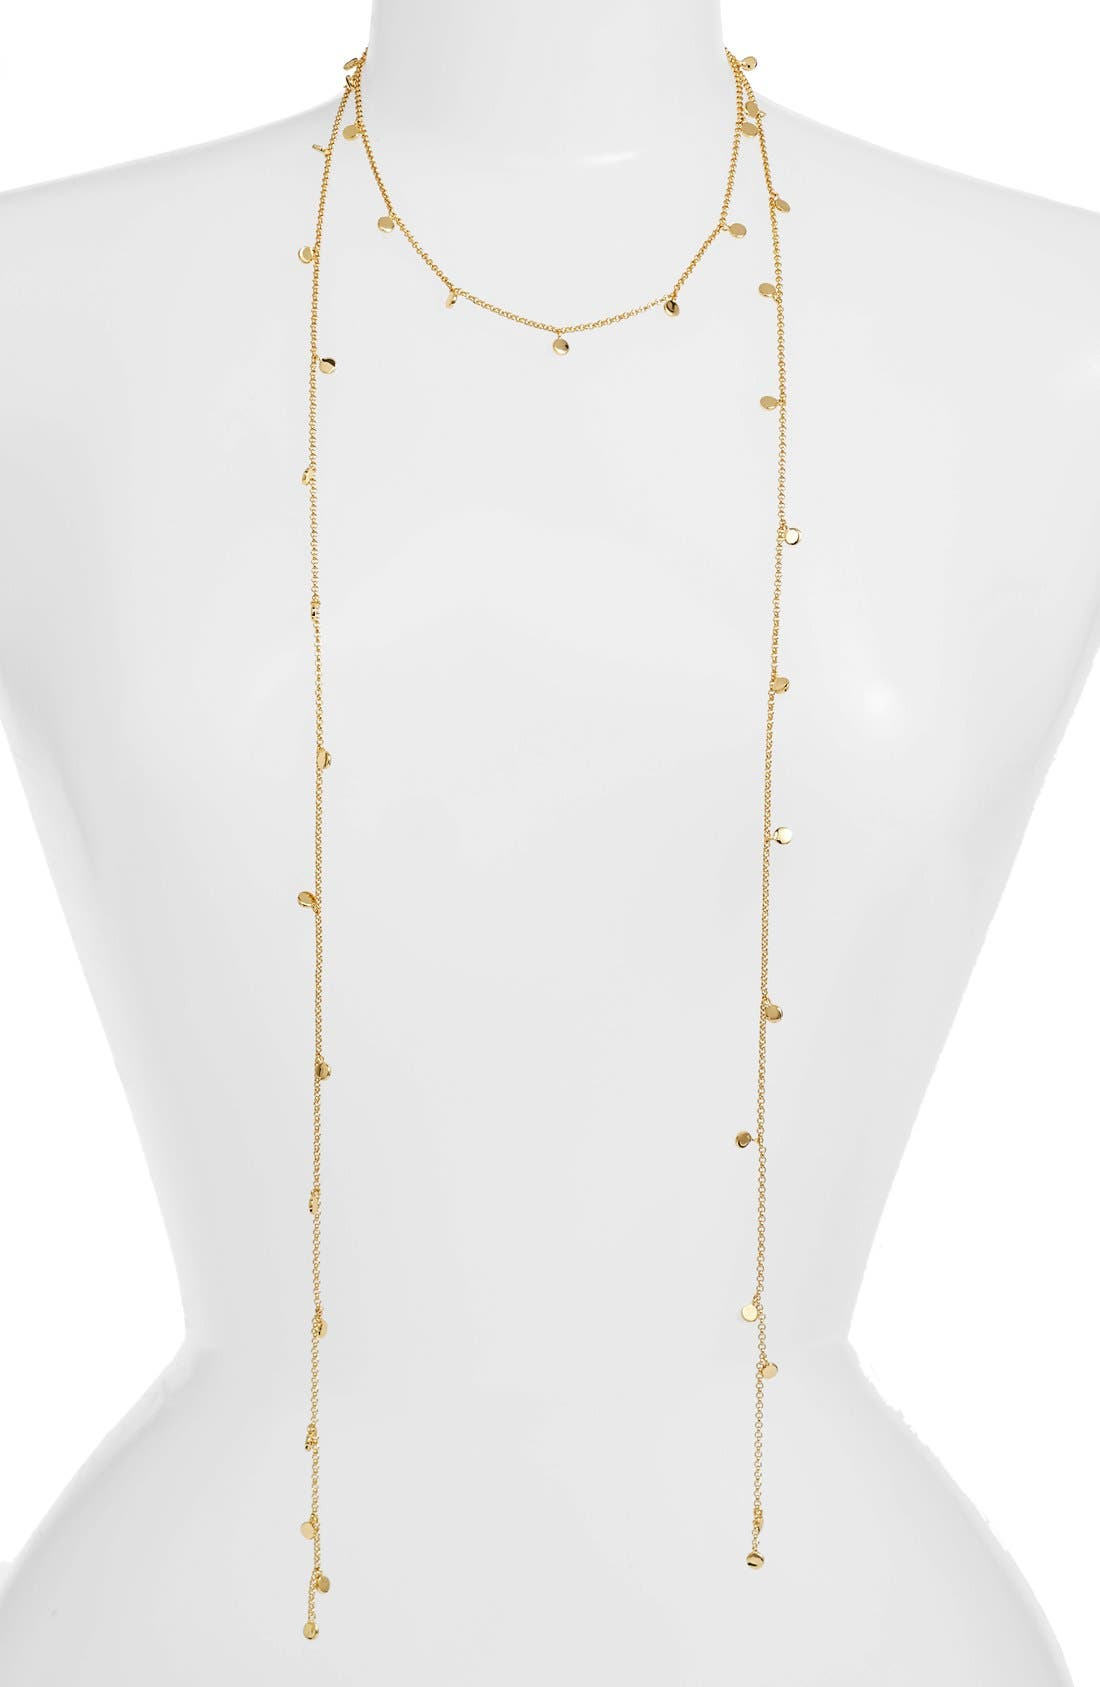 Jules Smith 'Marlin' Choker Necklace